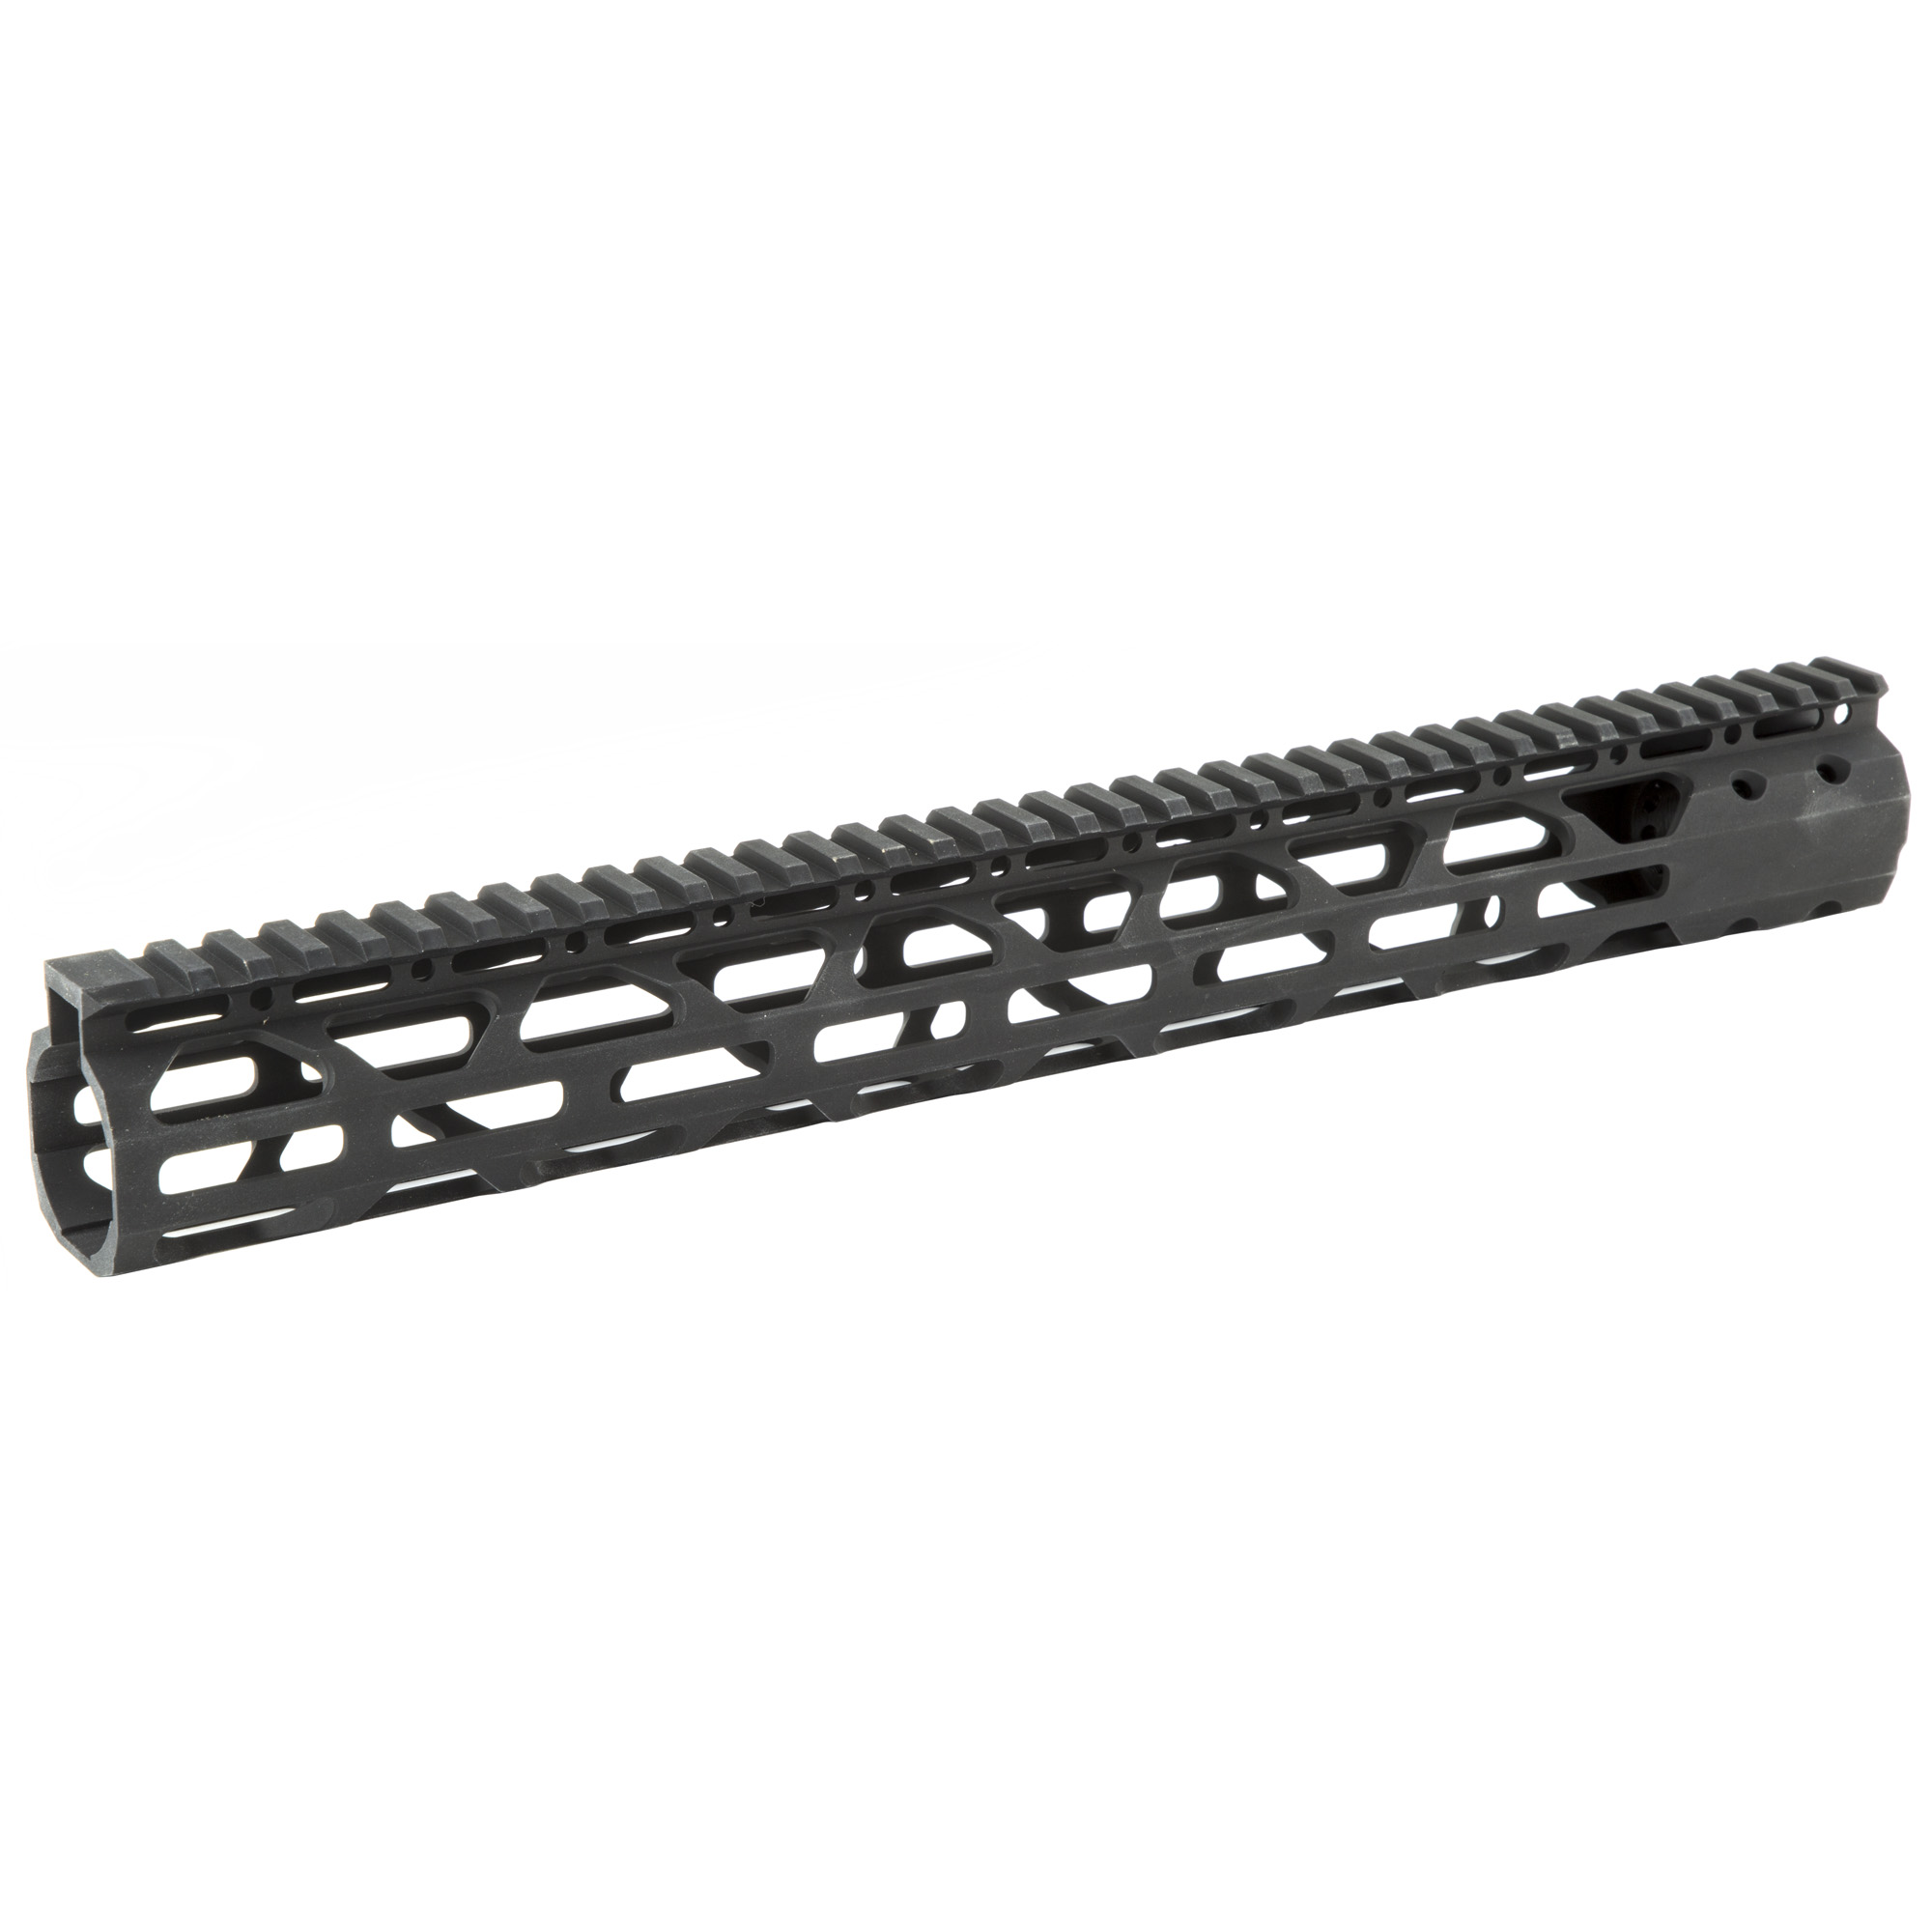 """The Advanced Technology Int. 15"""" Slim AR-15 Free-Float Forend Package fits AR-15 variants. Does Not fit AR-10 or .308 Variants. Made with military type III anodized"""" 6061 T6 aluminum and is ultra-light and virtually indestructible. It has a seamless intergraded top rail and M-LOK mounting locations on 3 sides for rails or compatible accessories. Made in the USA."""